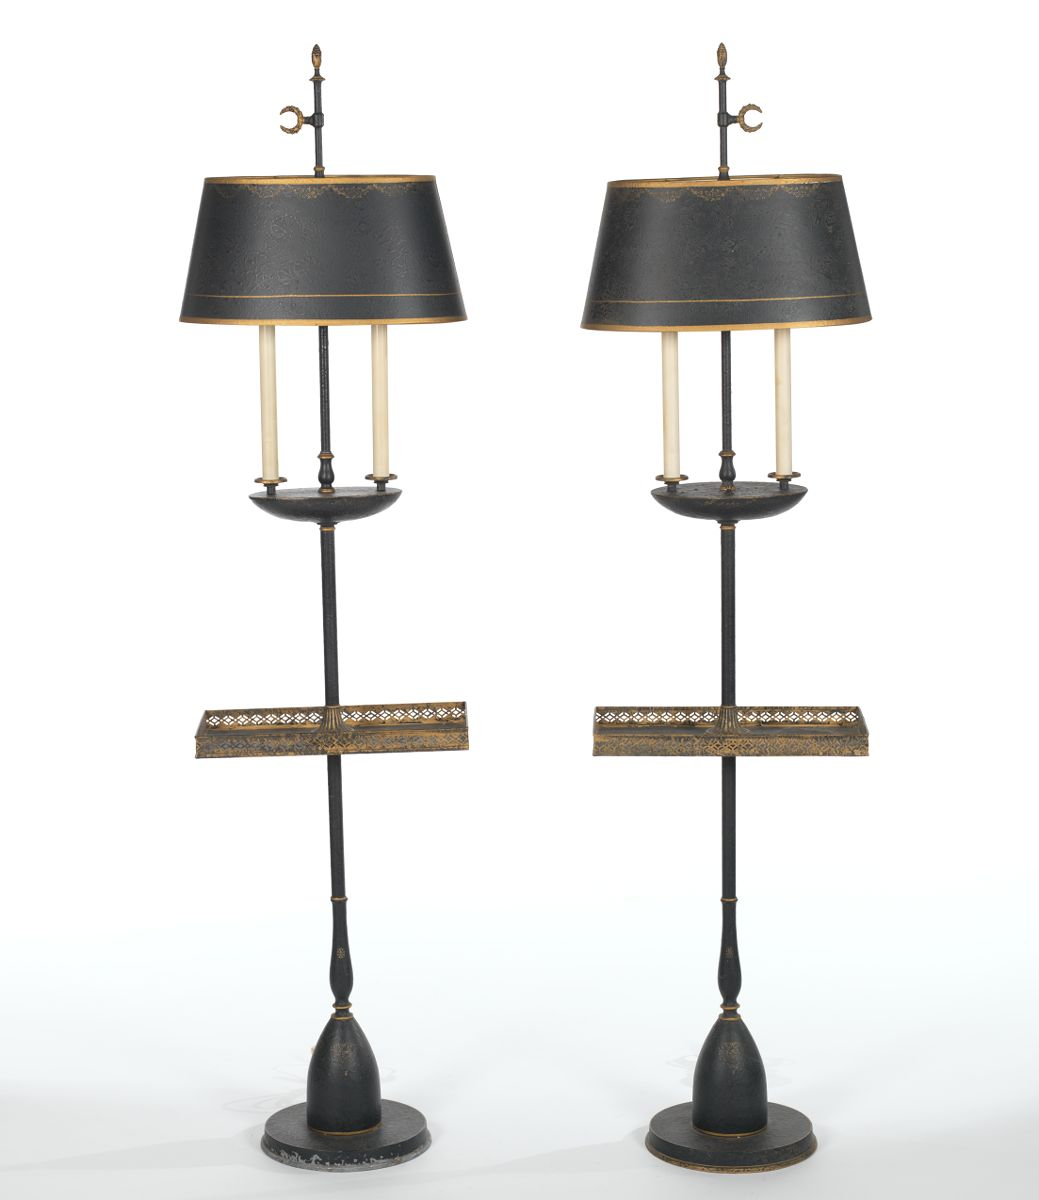 a pair of tray table floor lamps 06 20 14 sold 184